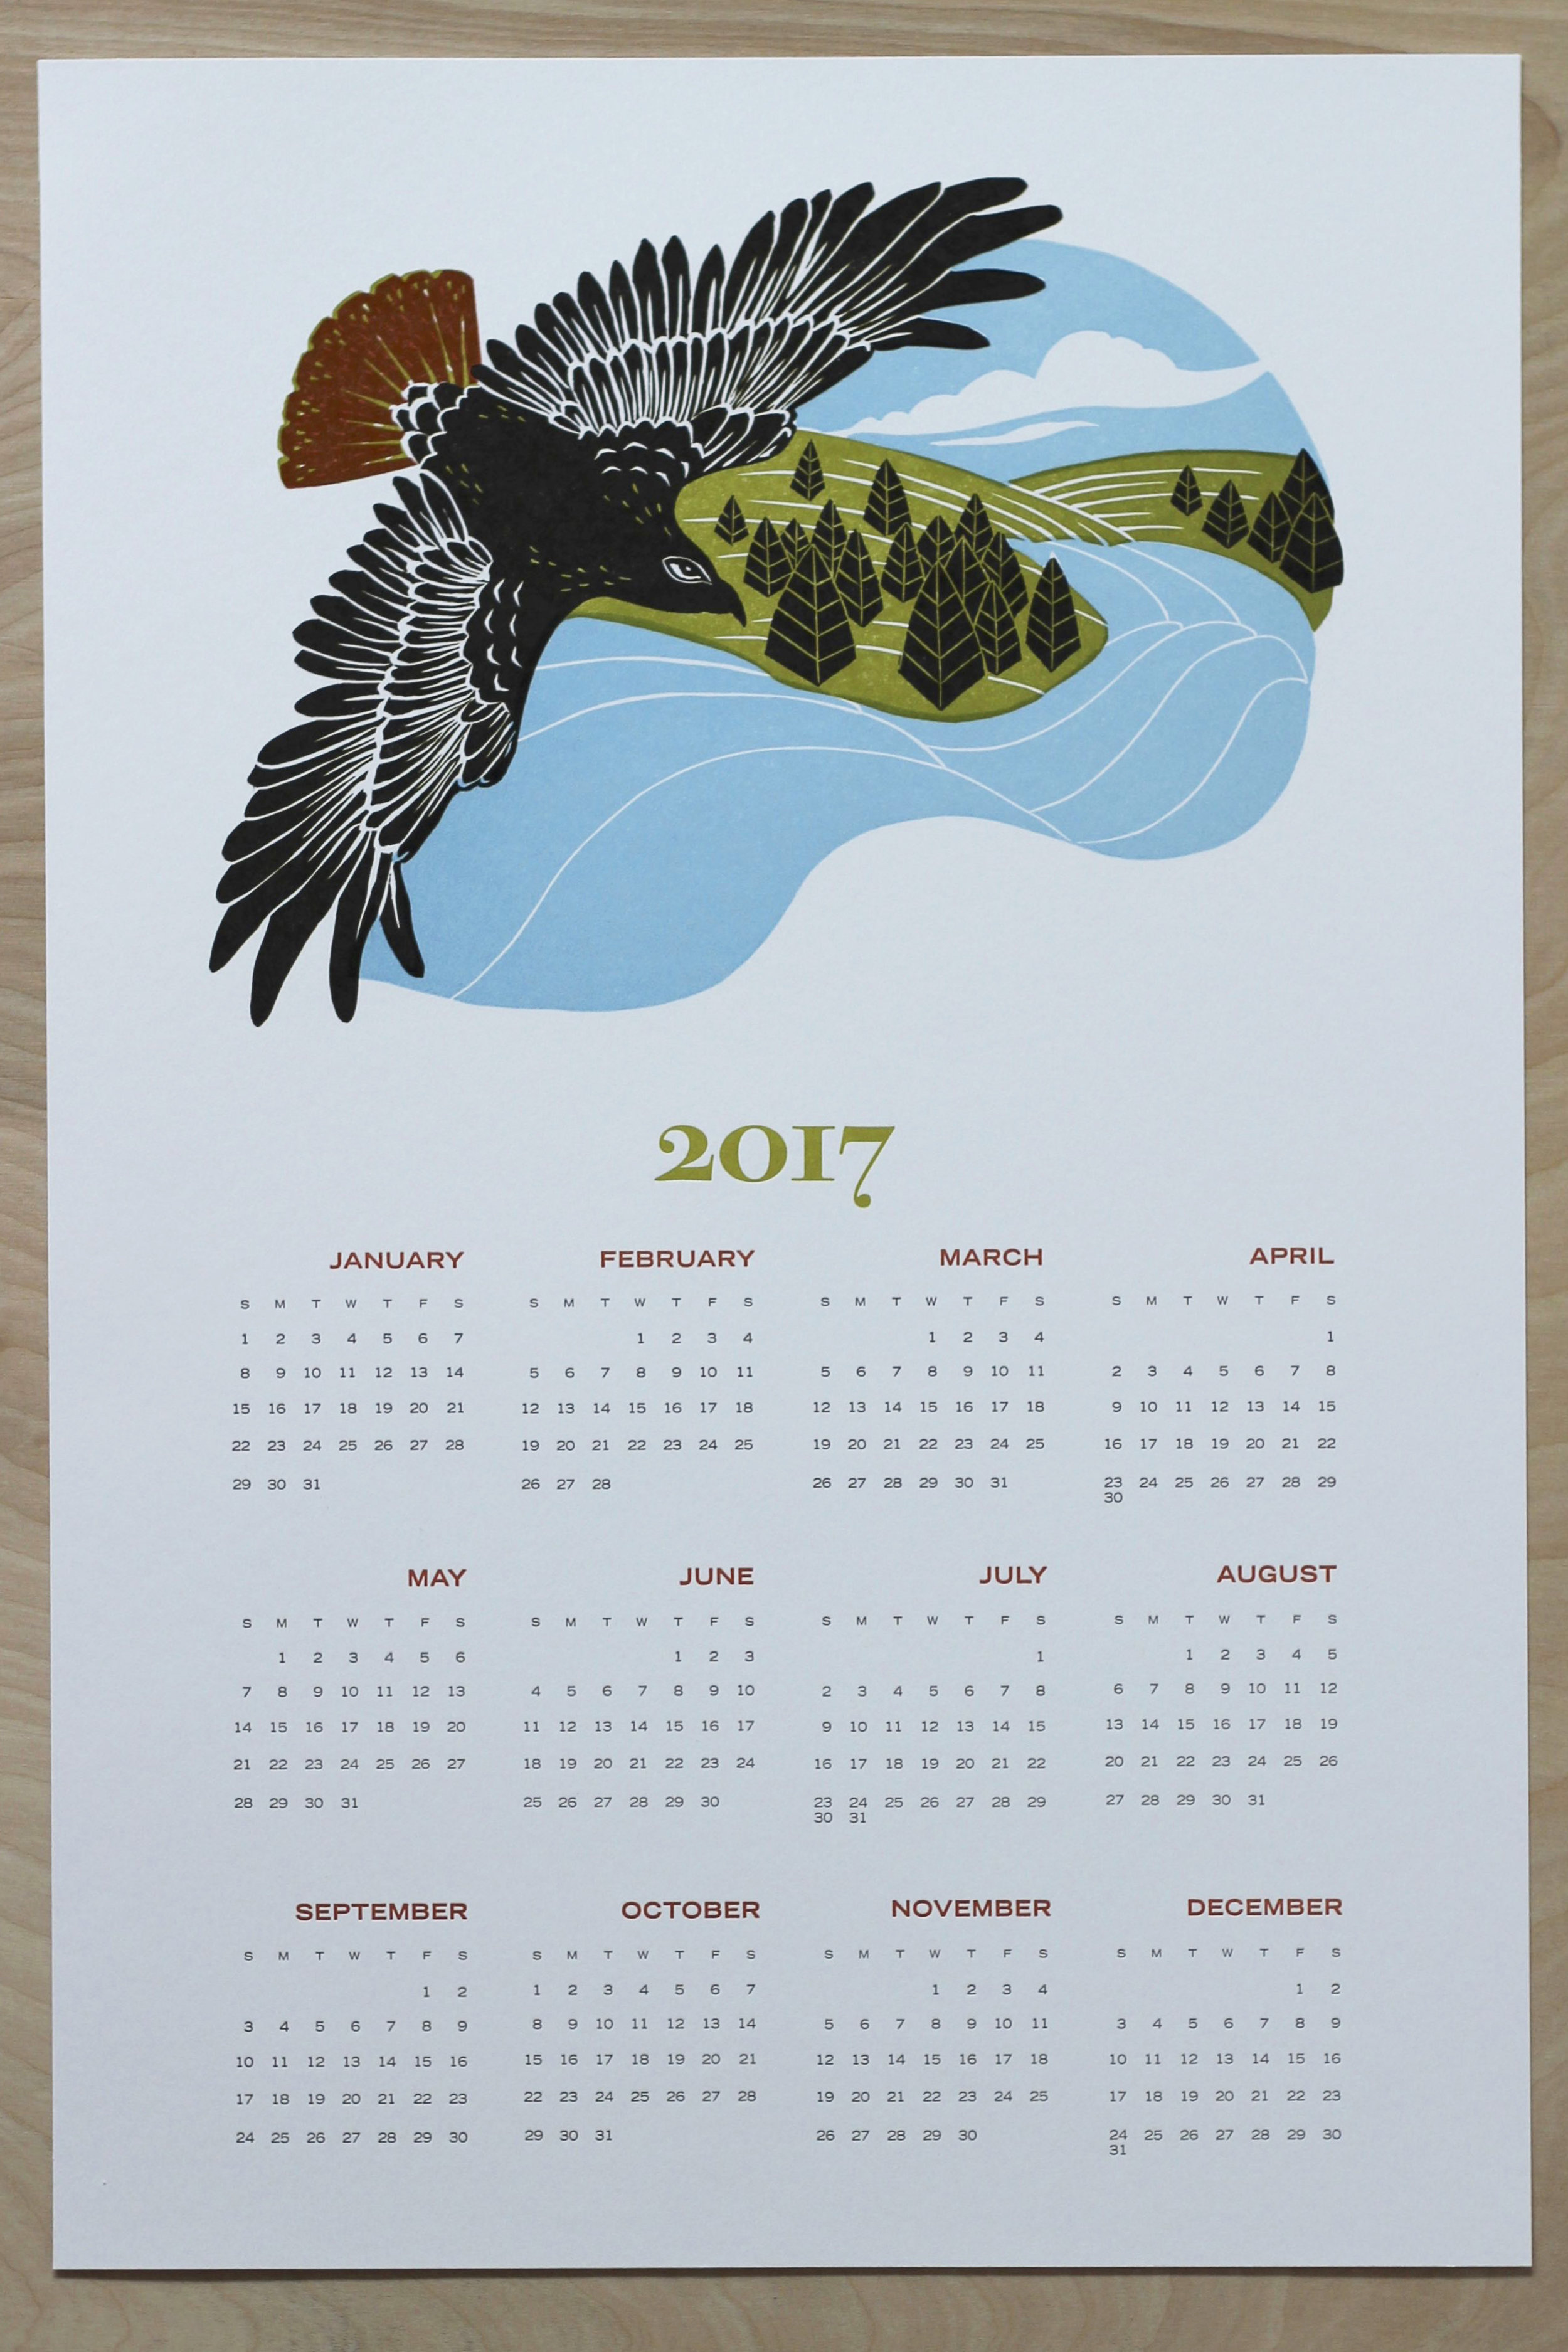 2017 letterpress printed wall calendar, year-at-a-glance poster calendar with red-tailed hawk linocut print.